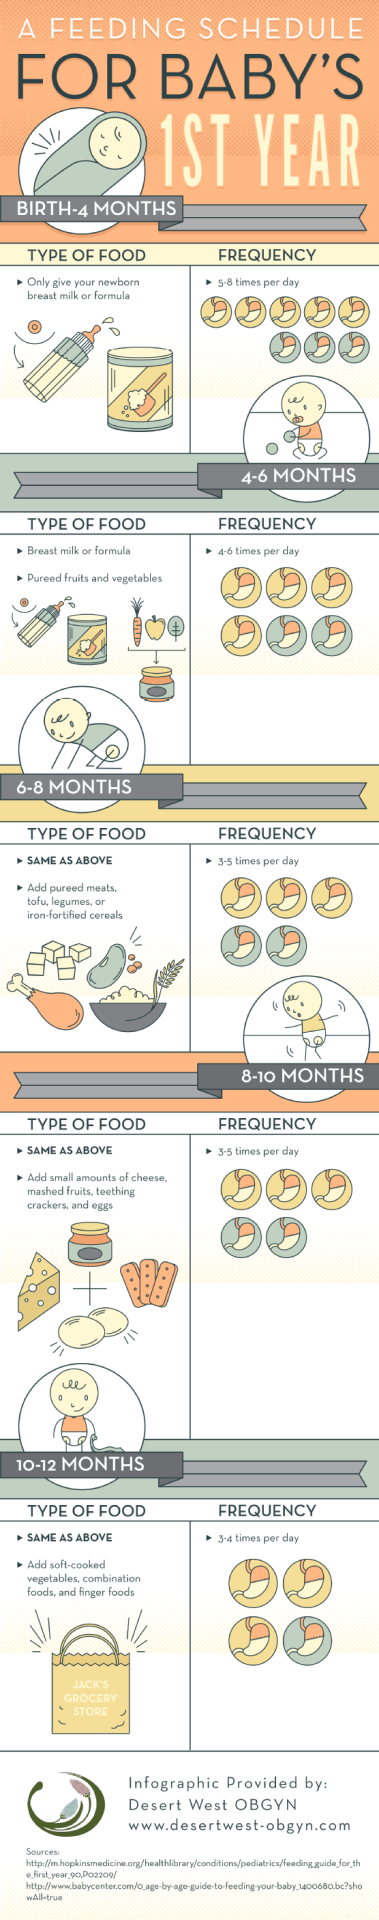 Start feeding your #baby between 3 and 5 times each day when he reaches 6 months of age. You can introduce him to pureed meats, tofu, legumes, or iron-fortified cereals during this time! Learn more by...